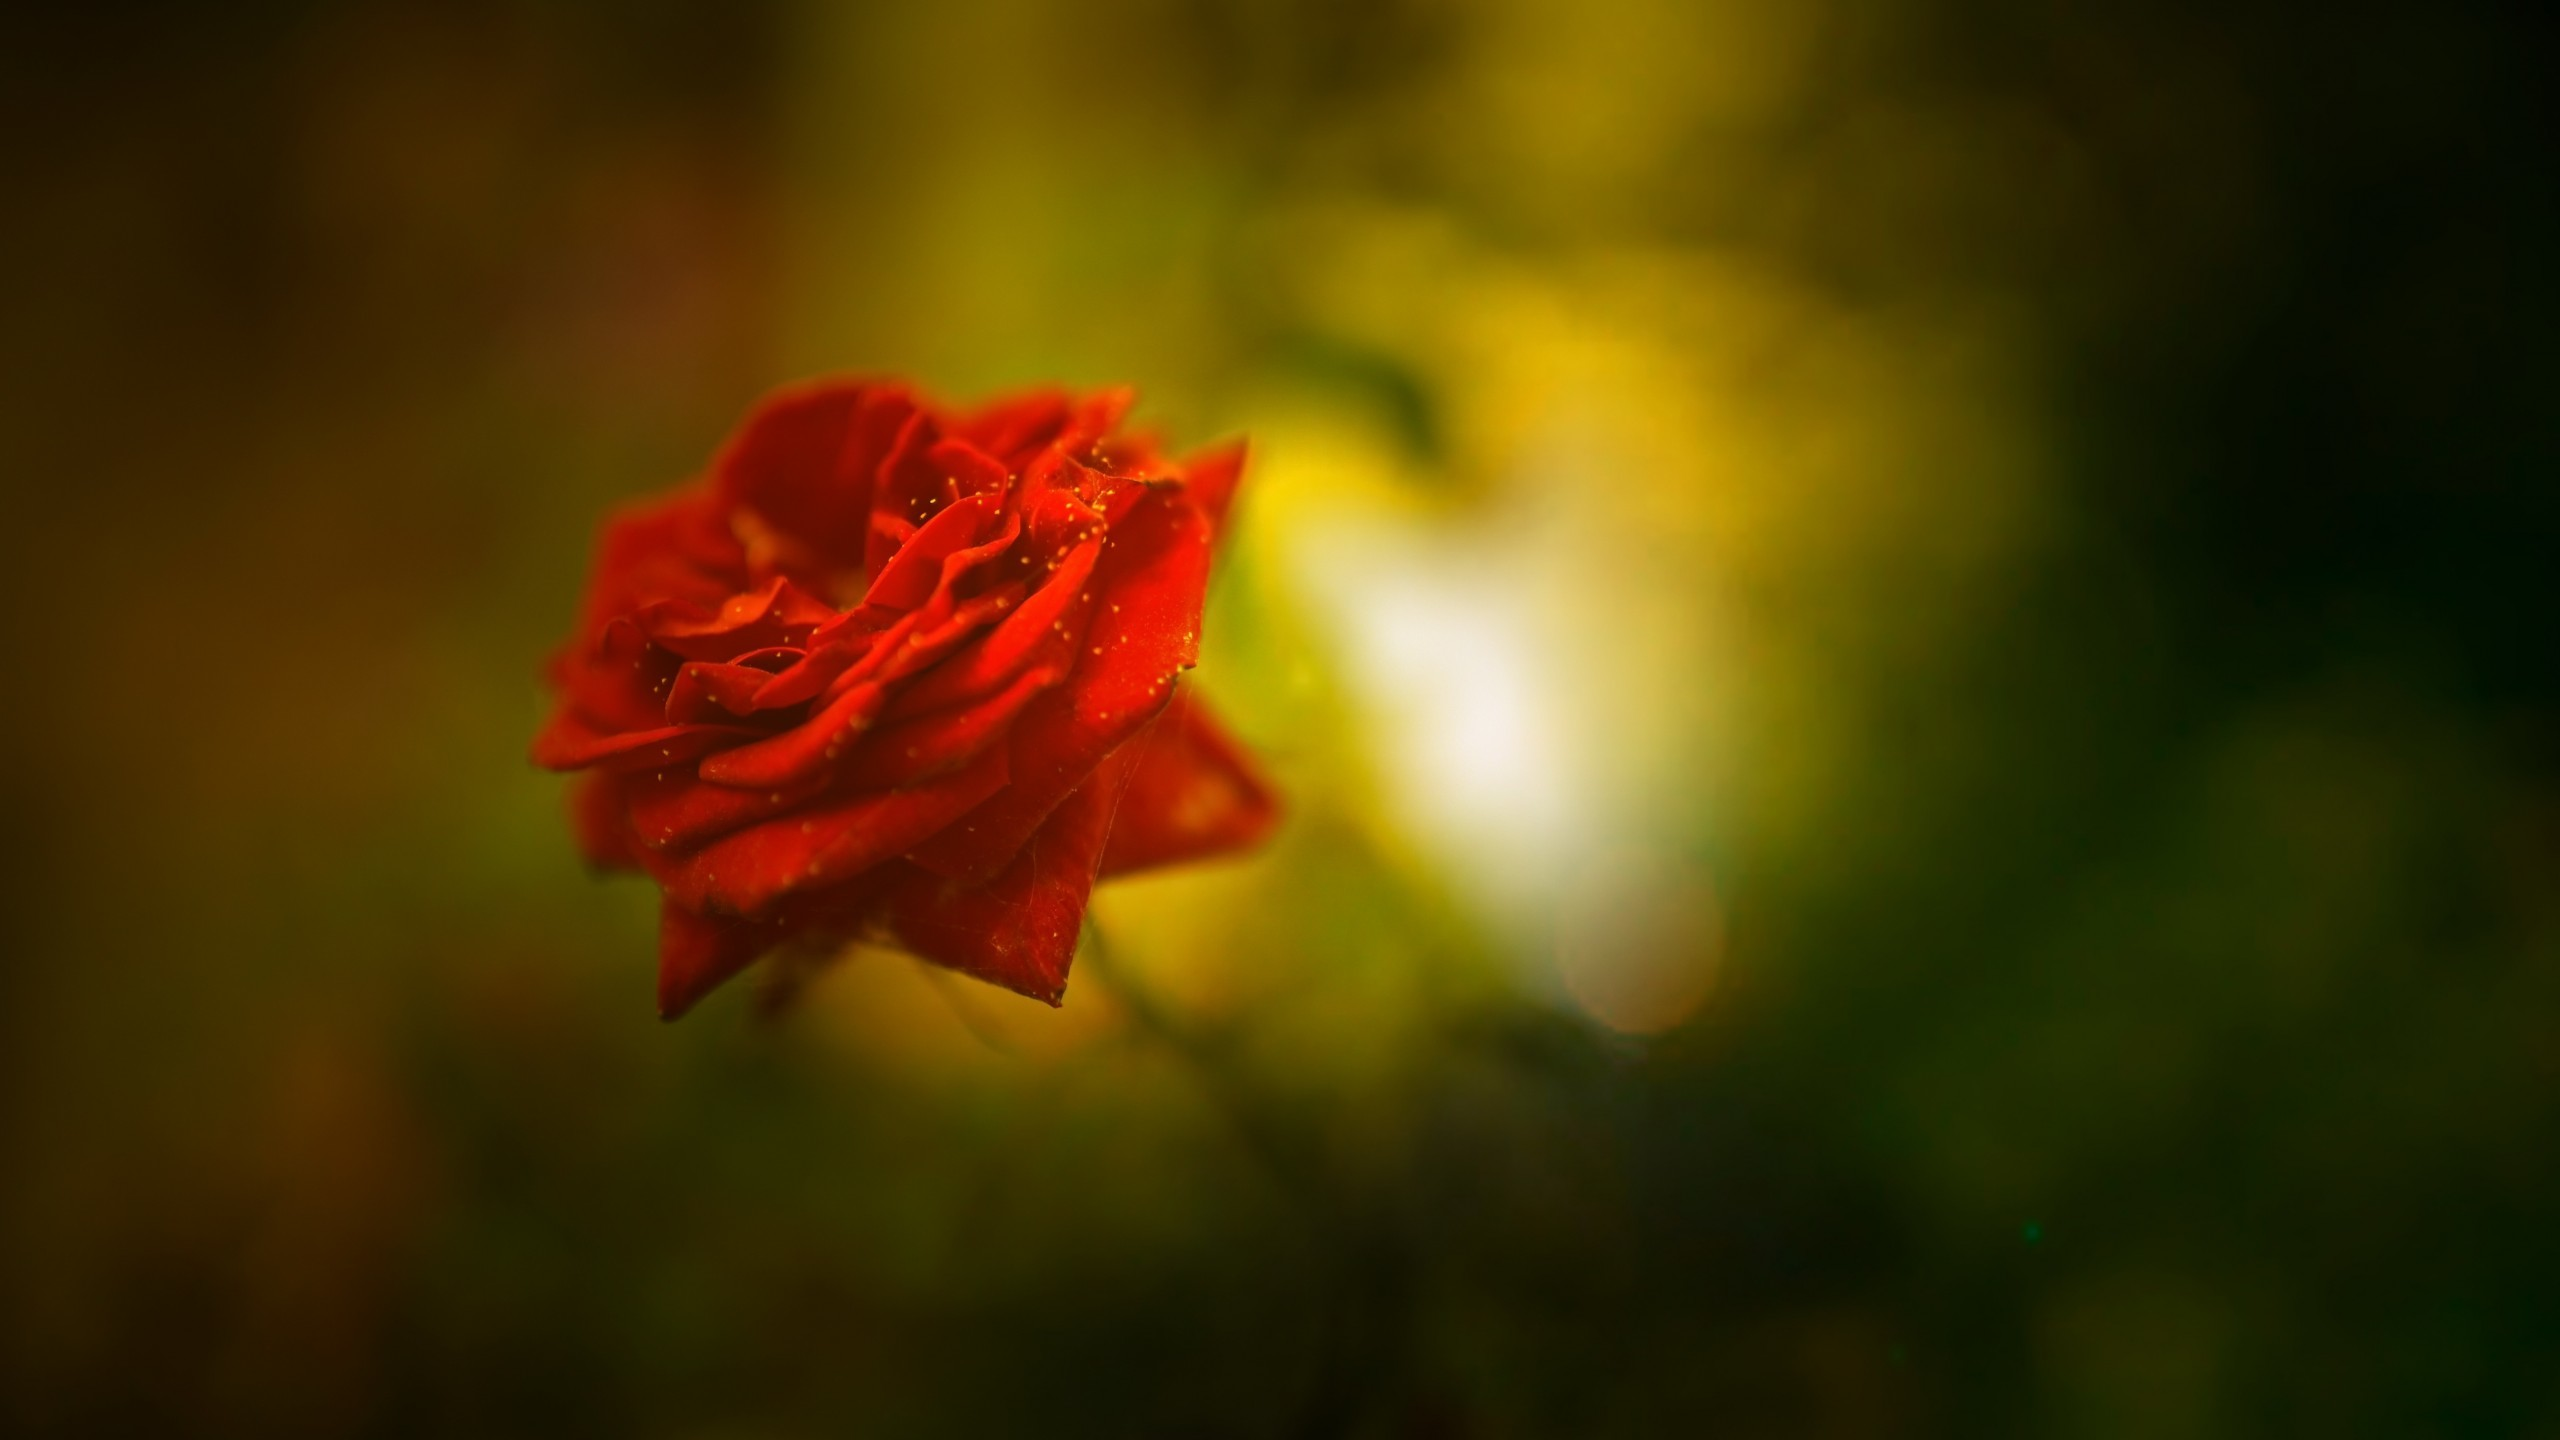 2560x1440 Flowers / Red Rose Wallpaper